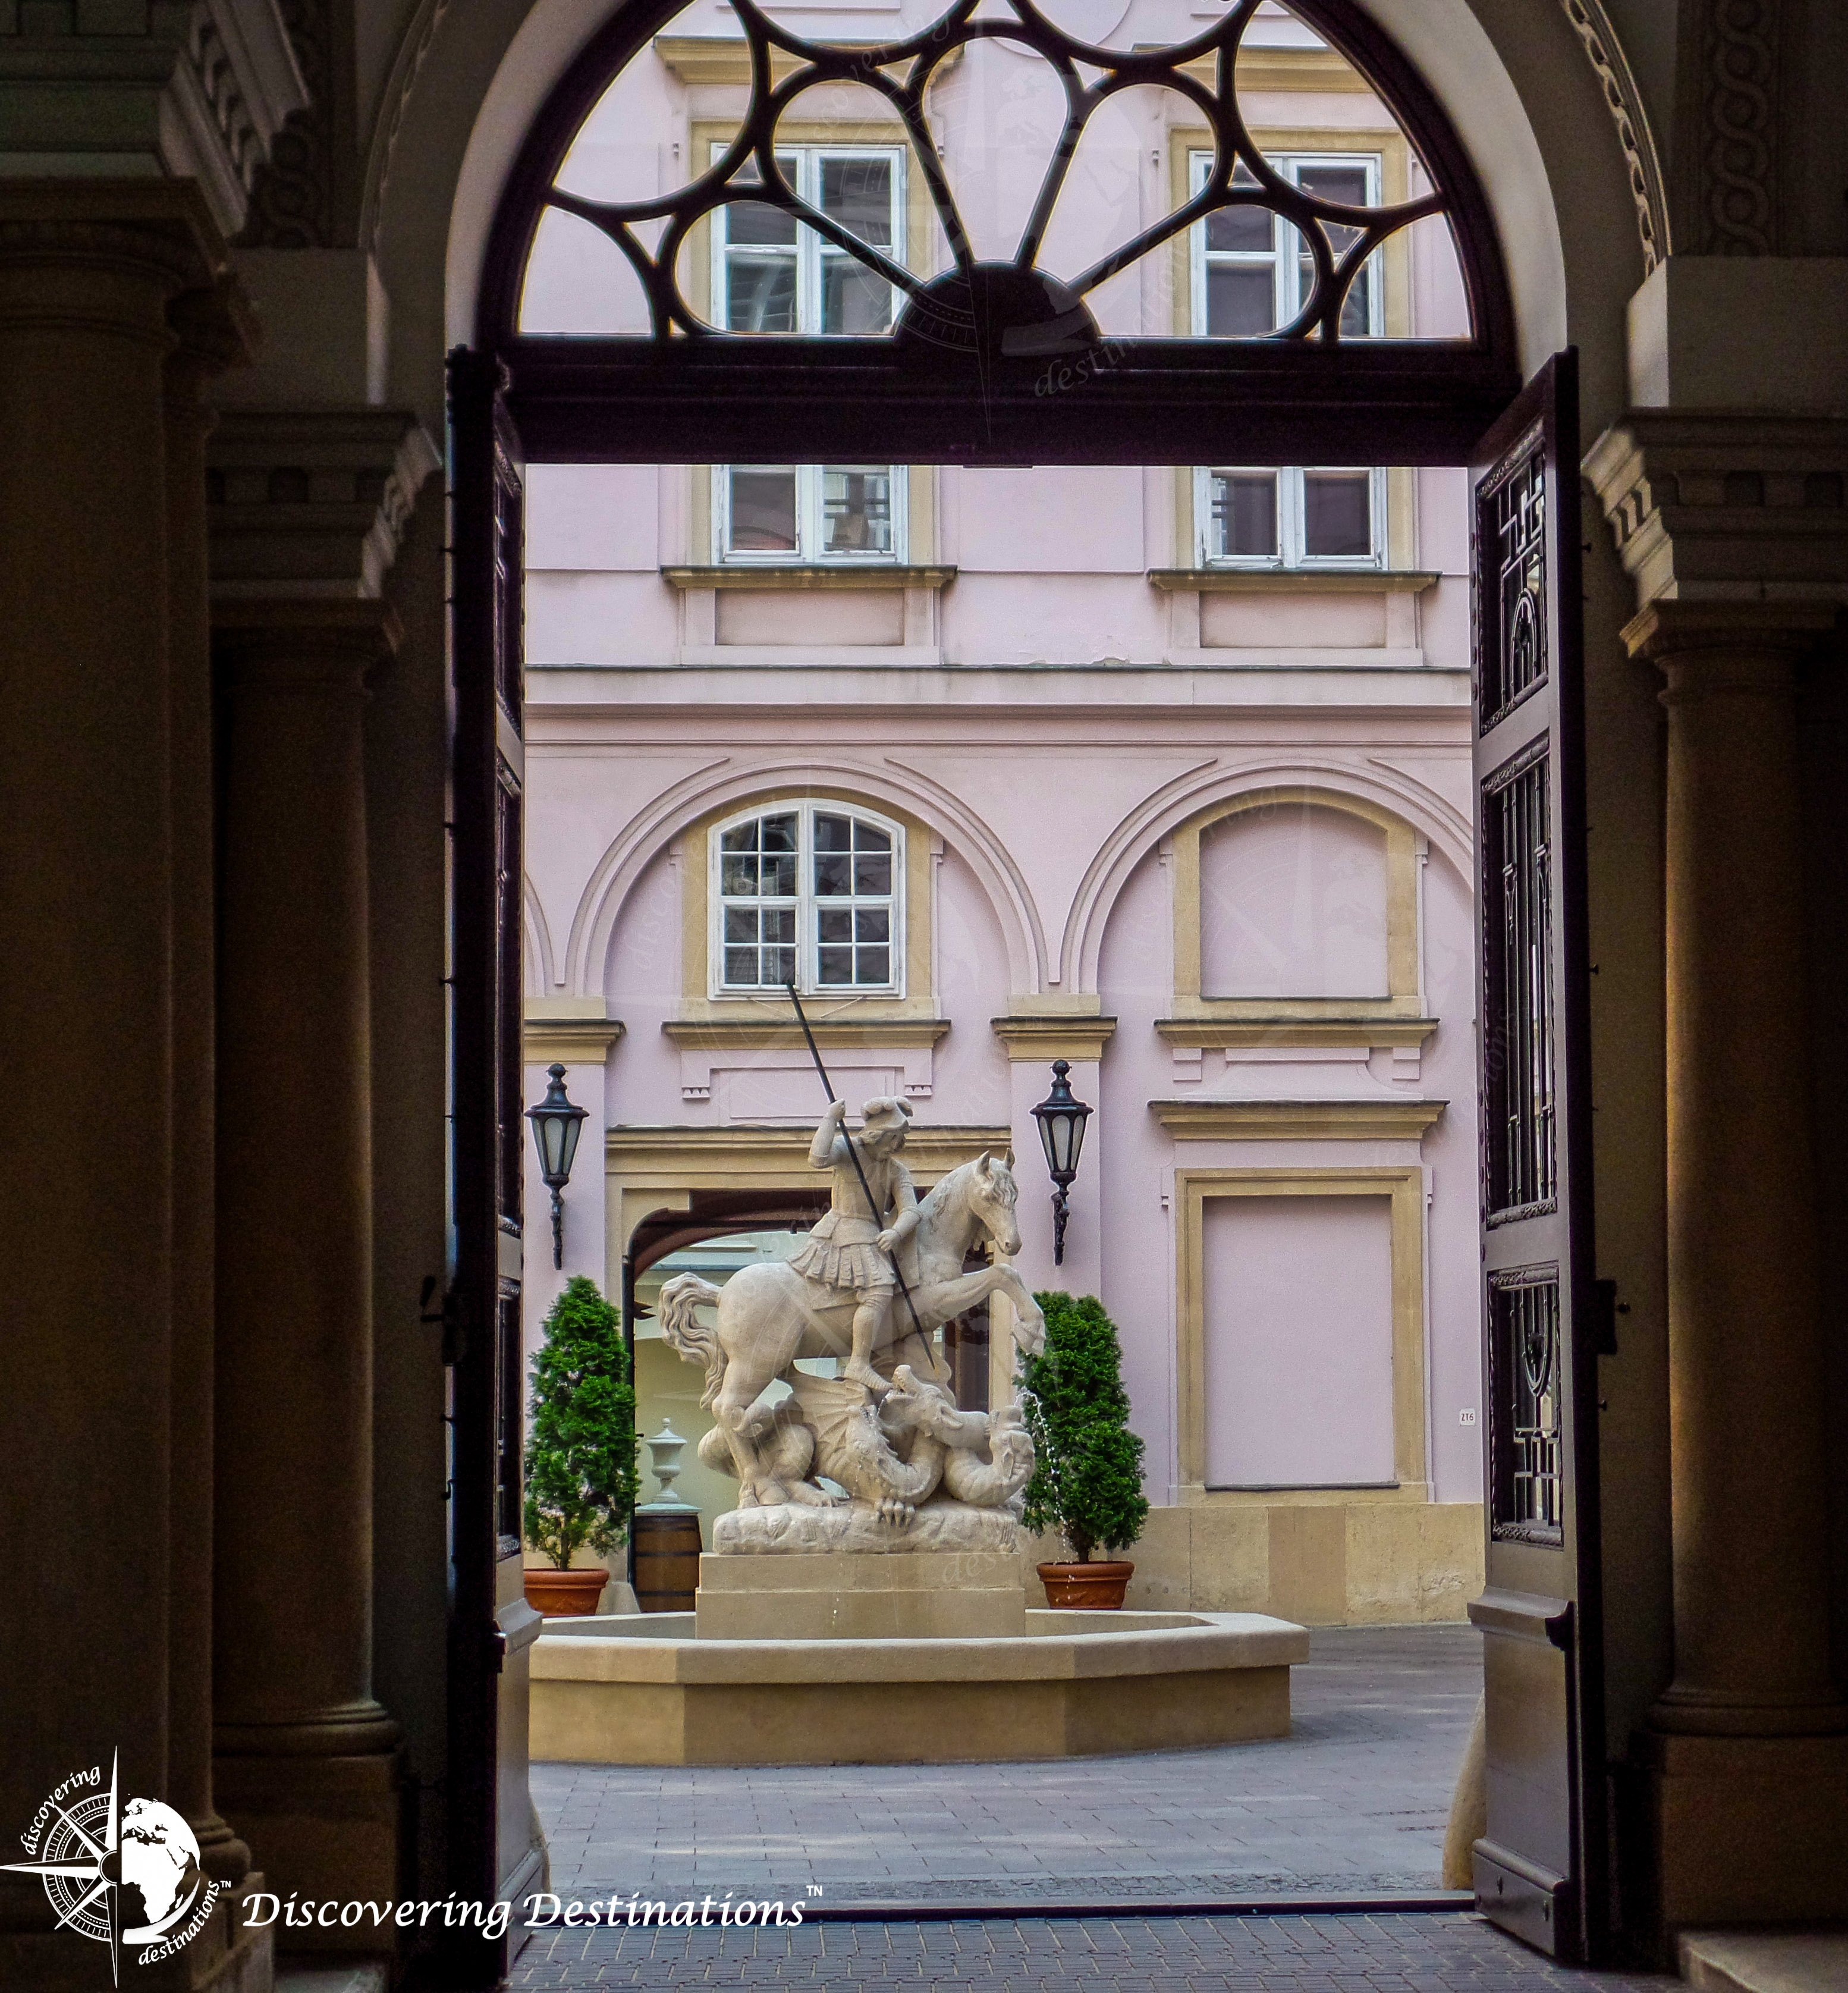 Discovering Primates Palace